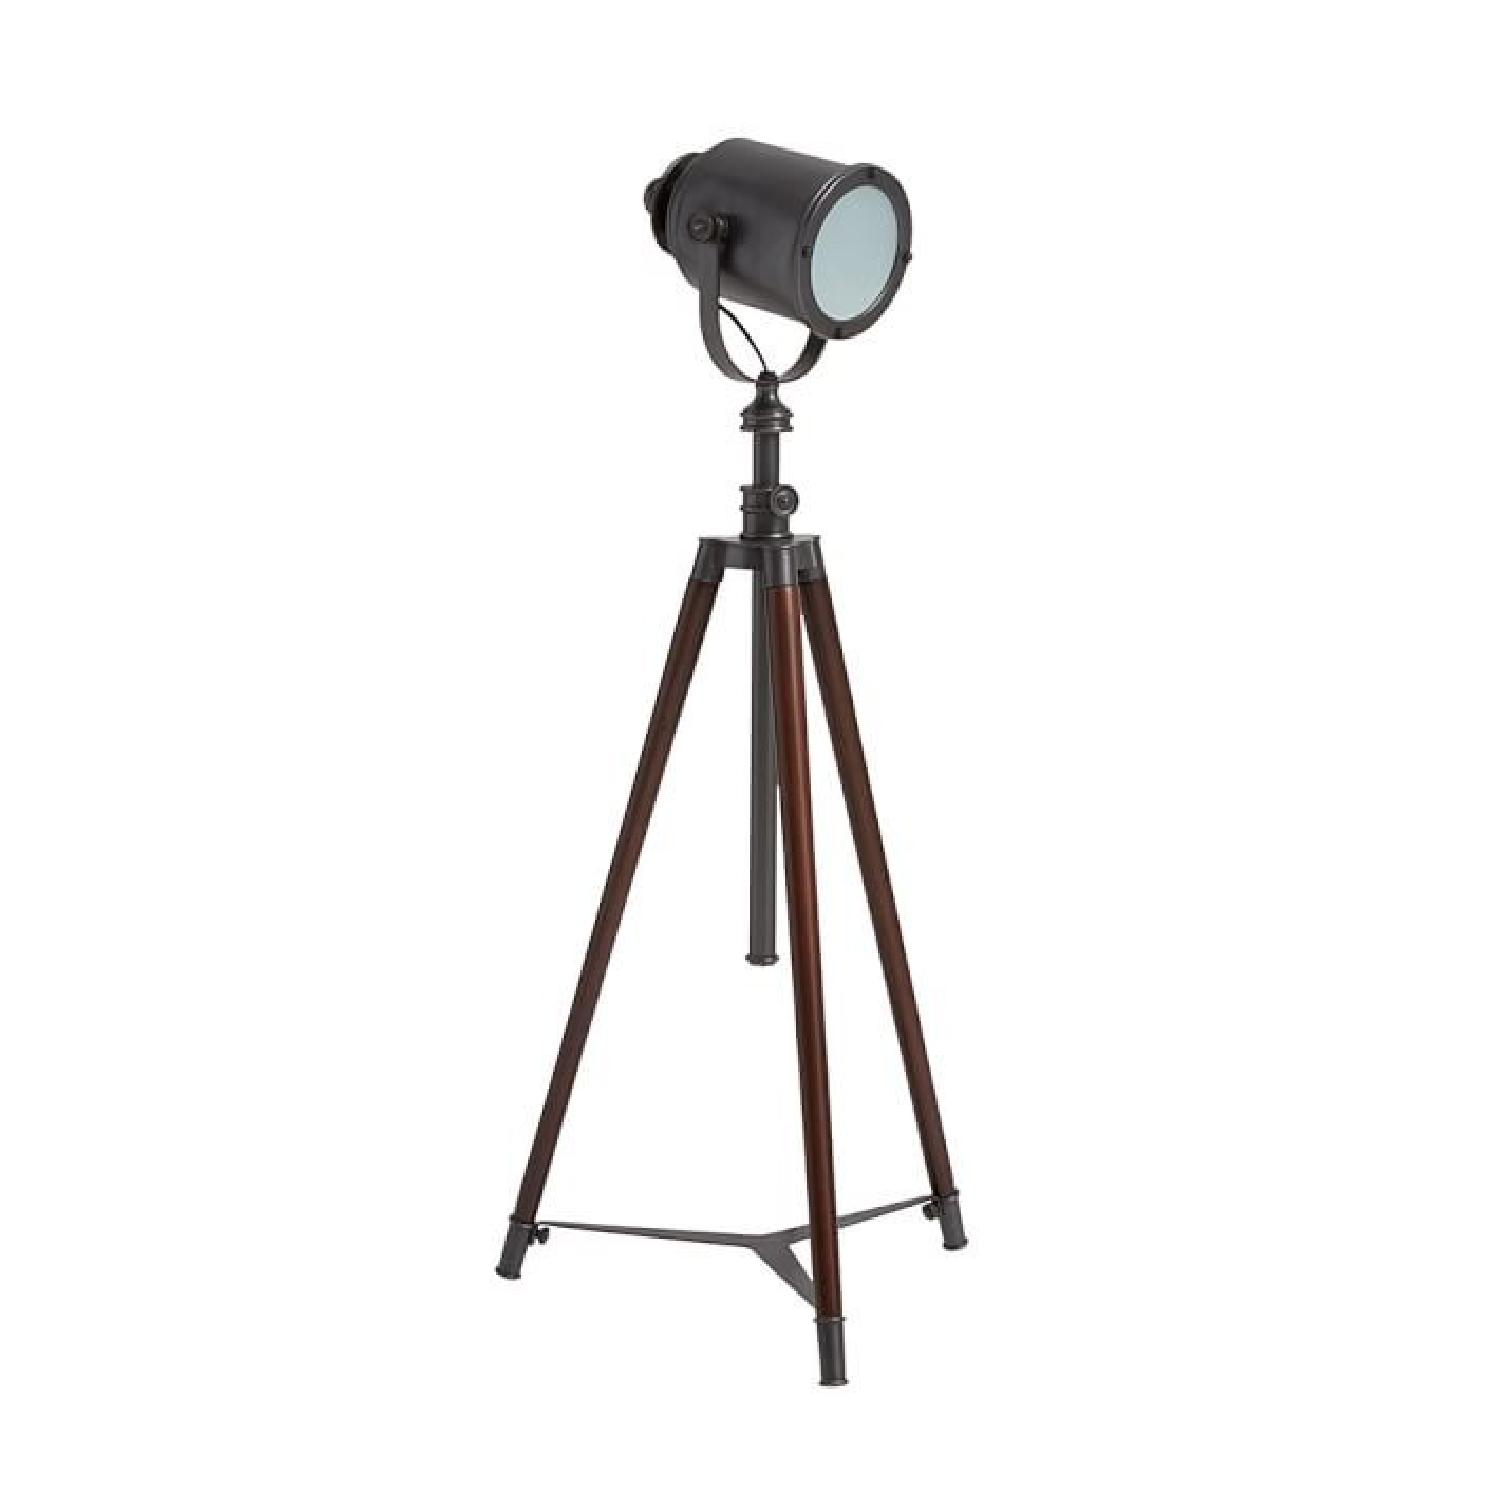 Pottery Barn Photographer's Tripod Floor Lamp